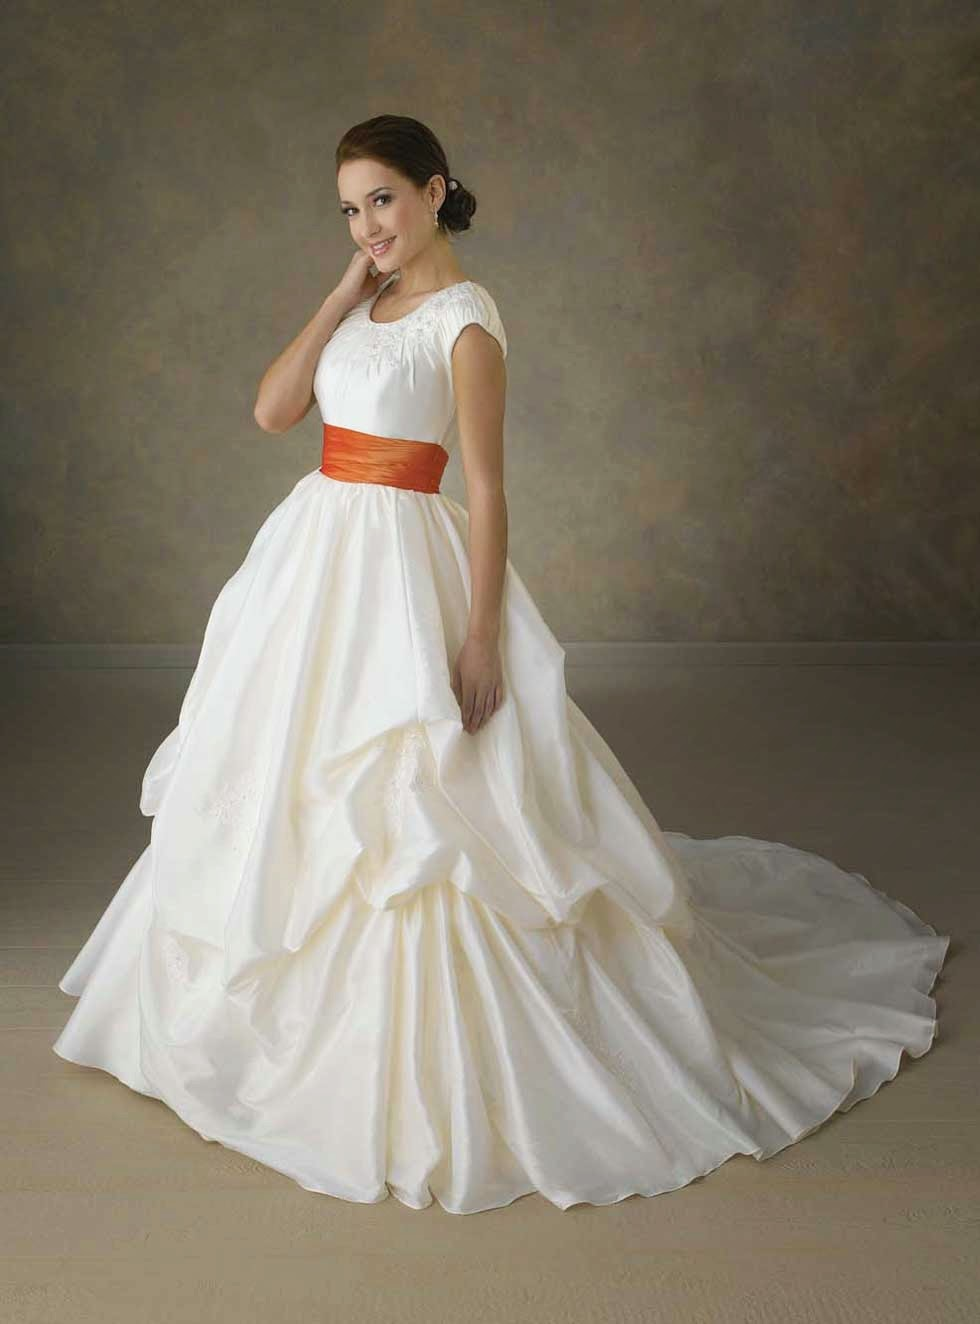 Wedding Dresses With Colored Sash Ideas Photos HD